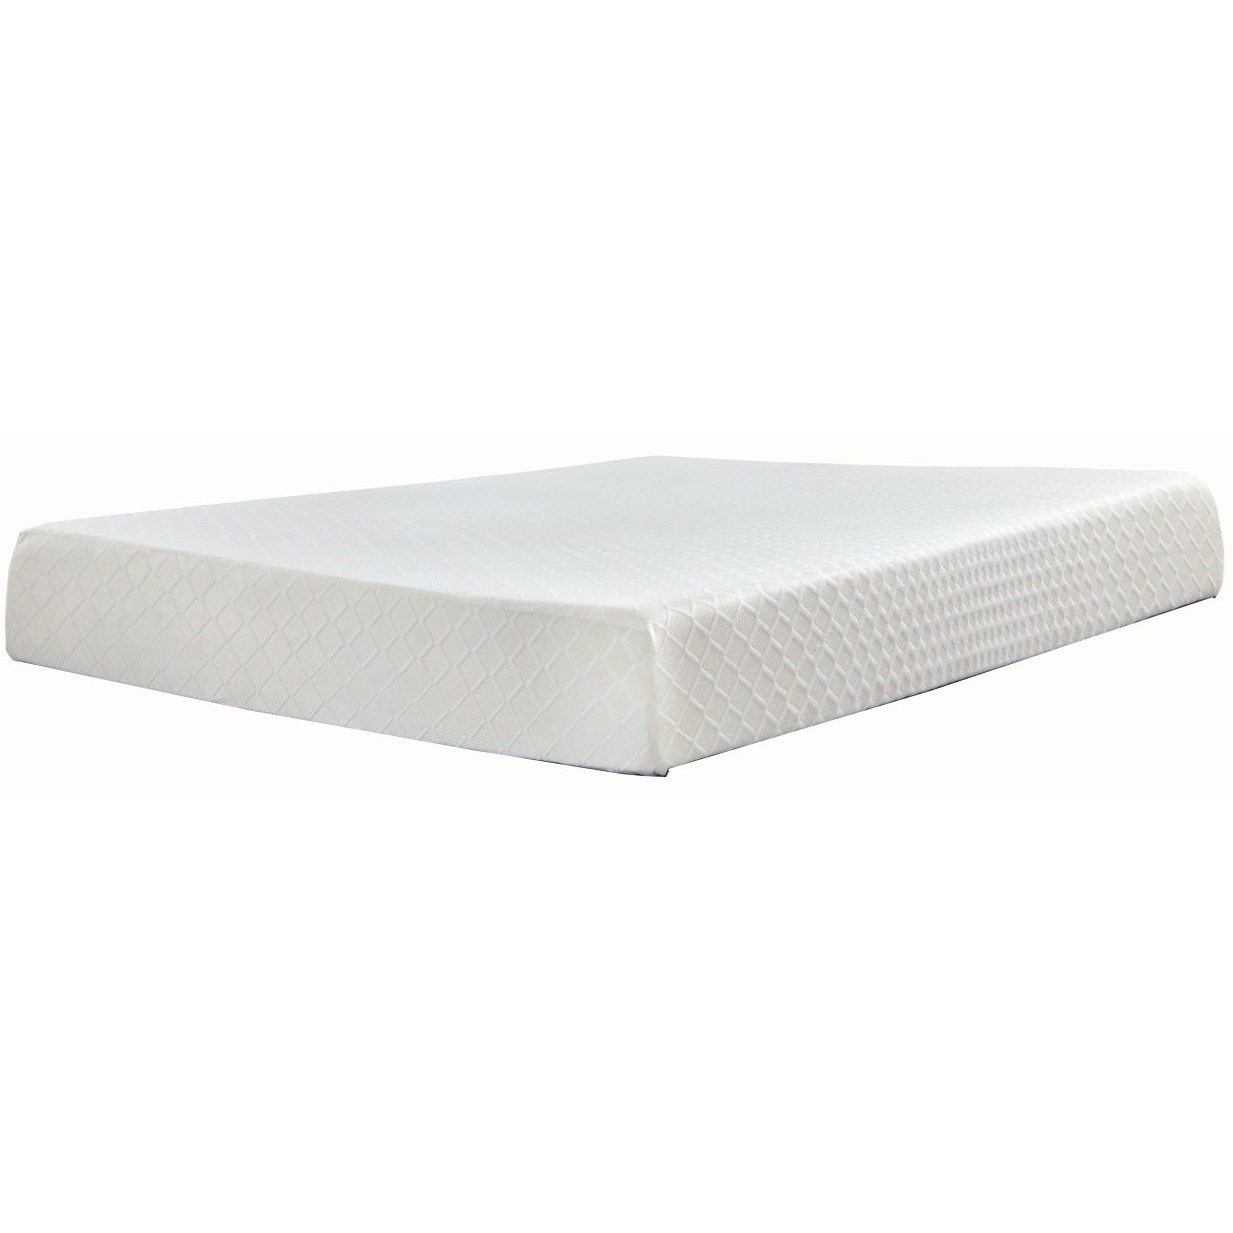 "M699 Chime 10 Queen 10"" Memory Foam Adj Set by SFC Mattress Co at Standard Furniture"